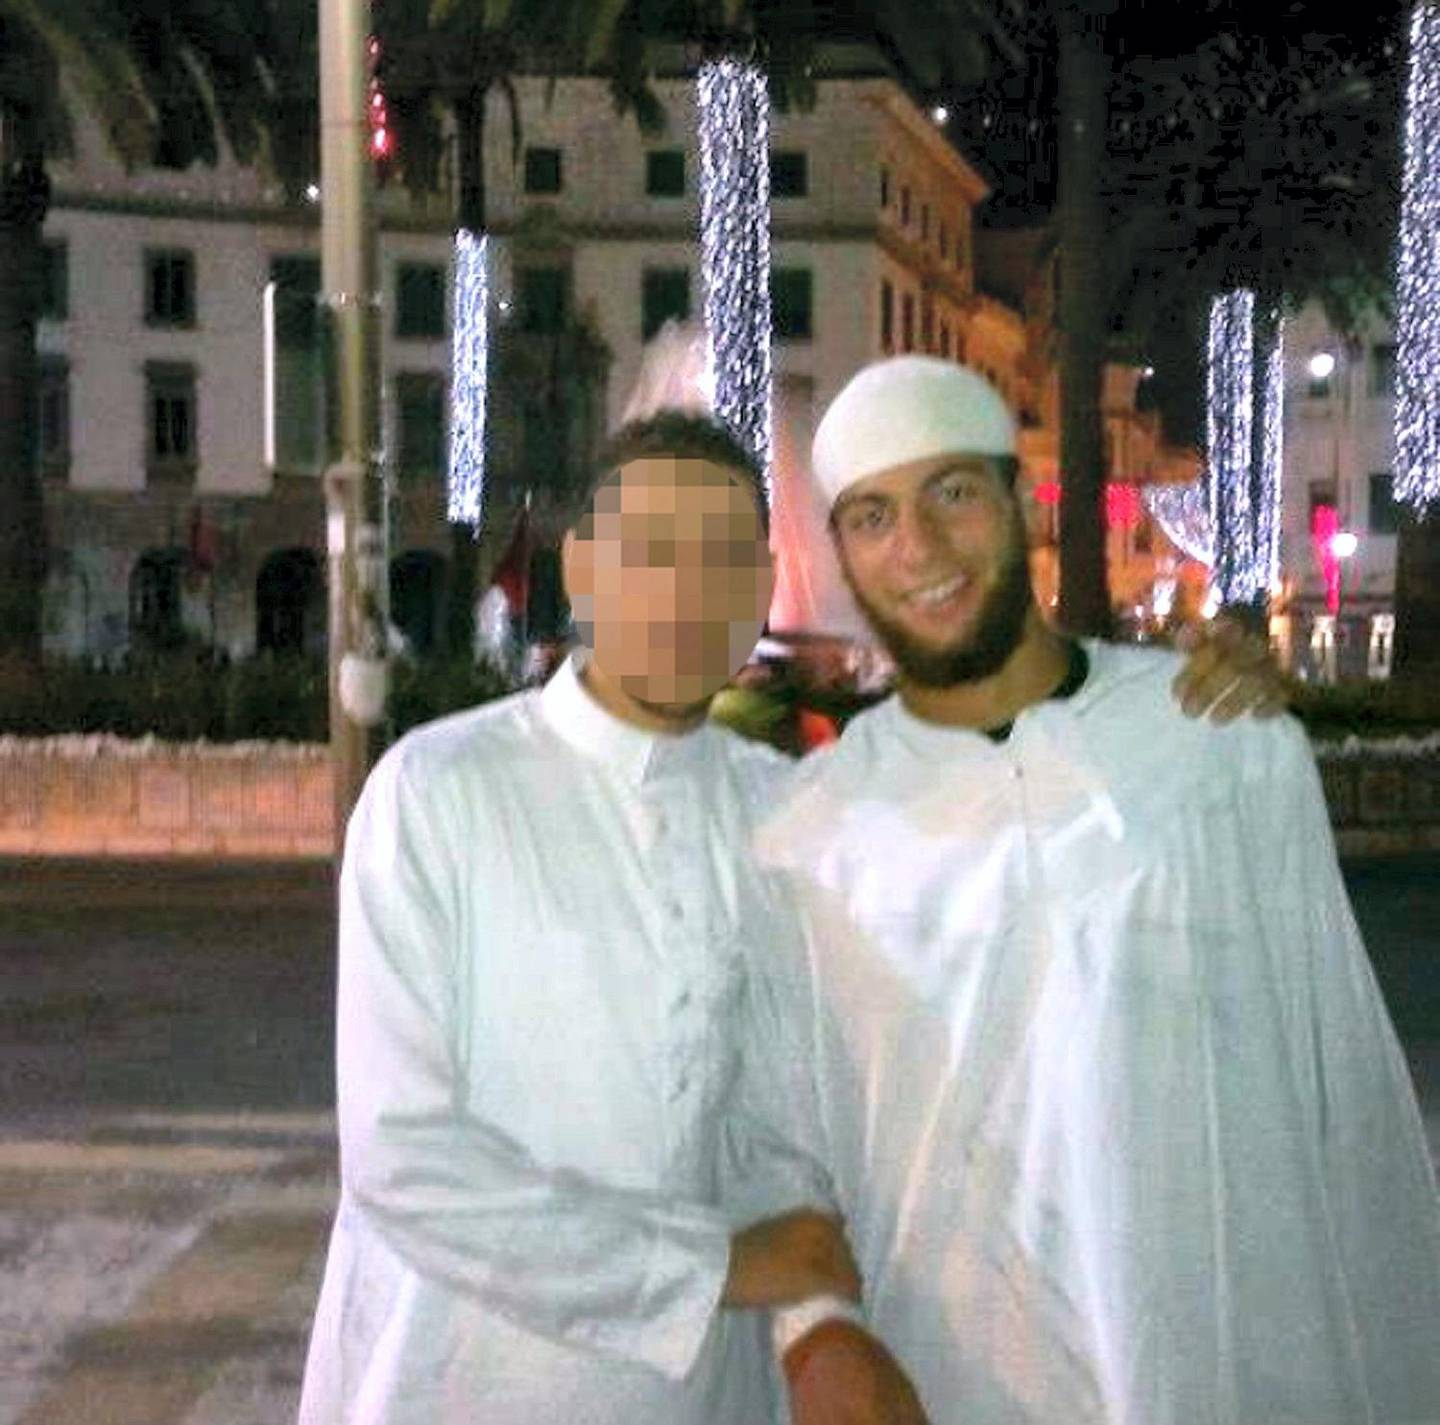 """An undated photo released by a social network shows the 25-year-old Moroccan suspect in Friday's shooting, named as Ayoub El-Khazzani (R), who was overpowered by two US servicemen and other passengers before he could kill anyone during an attack aboard an Amsterdam-Paris Thalys train on August 21, 2015. He lived in (southern) Spain in Algeciras for a year, until 2014, then he decided to move to France. Once in France he went to Syria, then returned to France, according to a Spanish anti-terror source. AFP PHOTO / SOCIAL NETWORK  = RESTRICTED TO EDITORIAL USE - MANDATORY CREDIT """"AFP PHOTO / SOCIAL NETWORK"""" - NO MARKETING NO ADVERTISING CAMPAIGNS - DISTRIBUTED AS A SERVICE TO CLIENTS = (Photo by - / - / AFP)"""